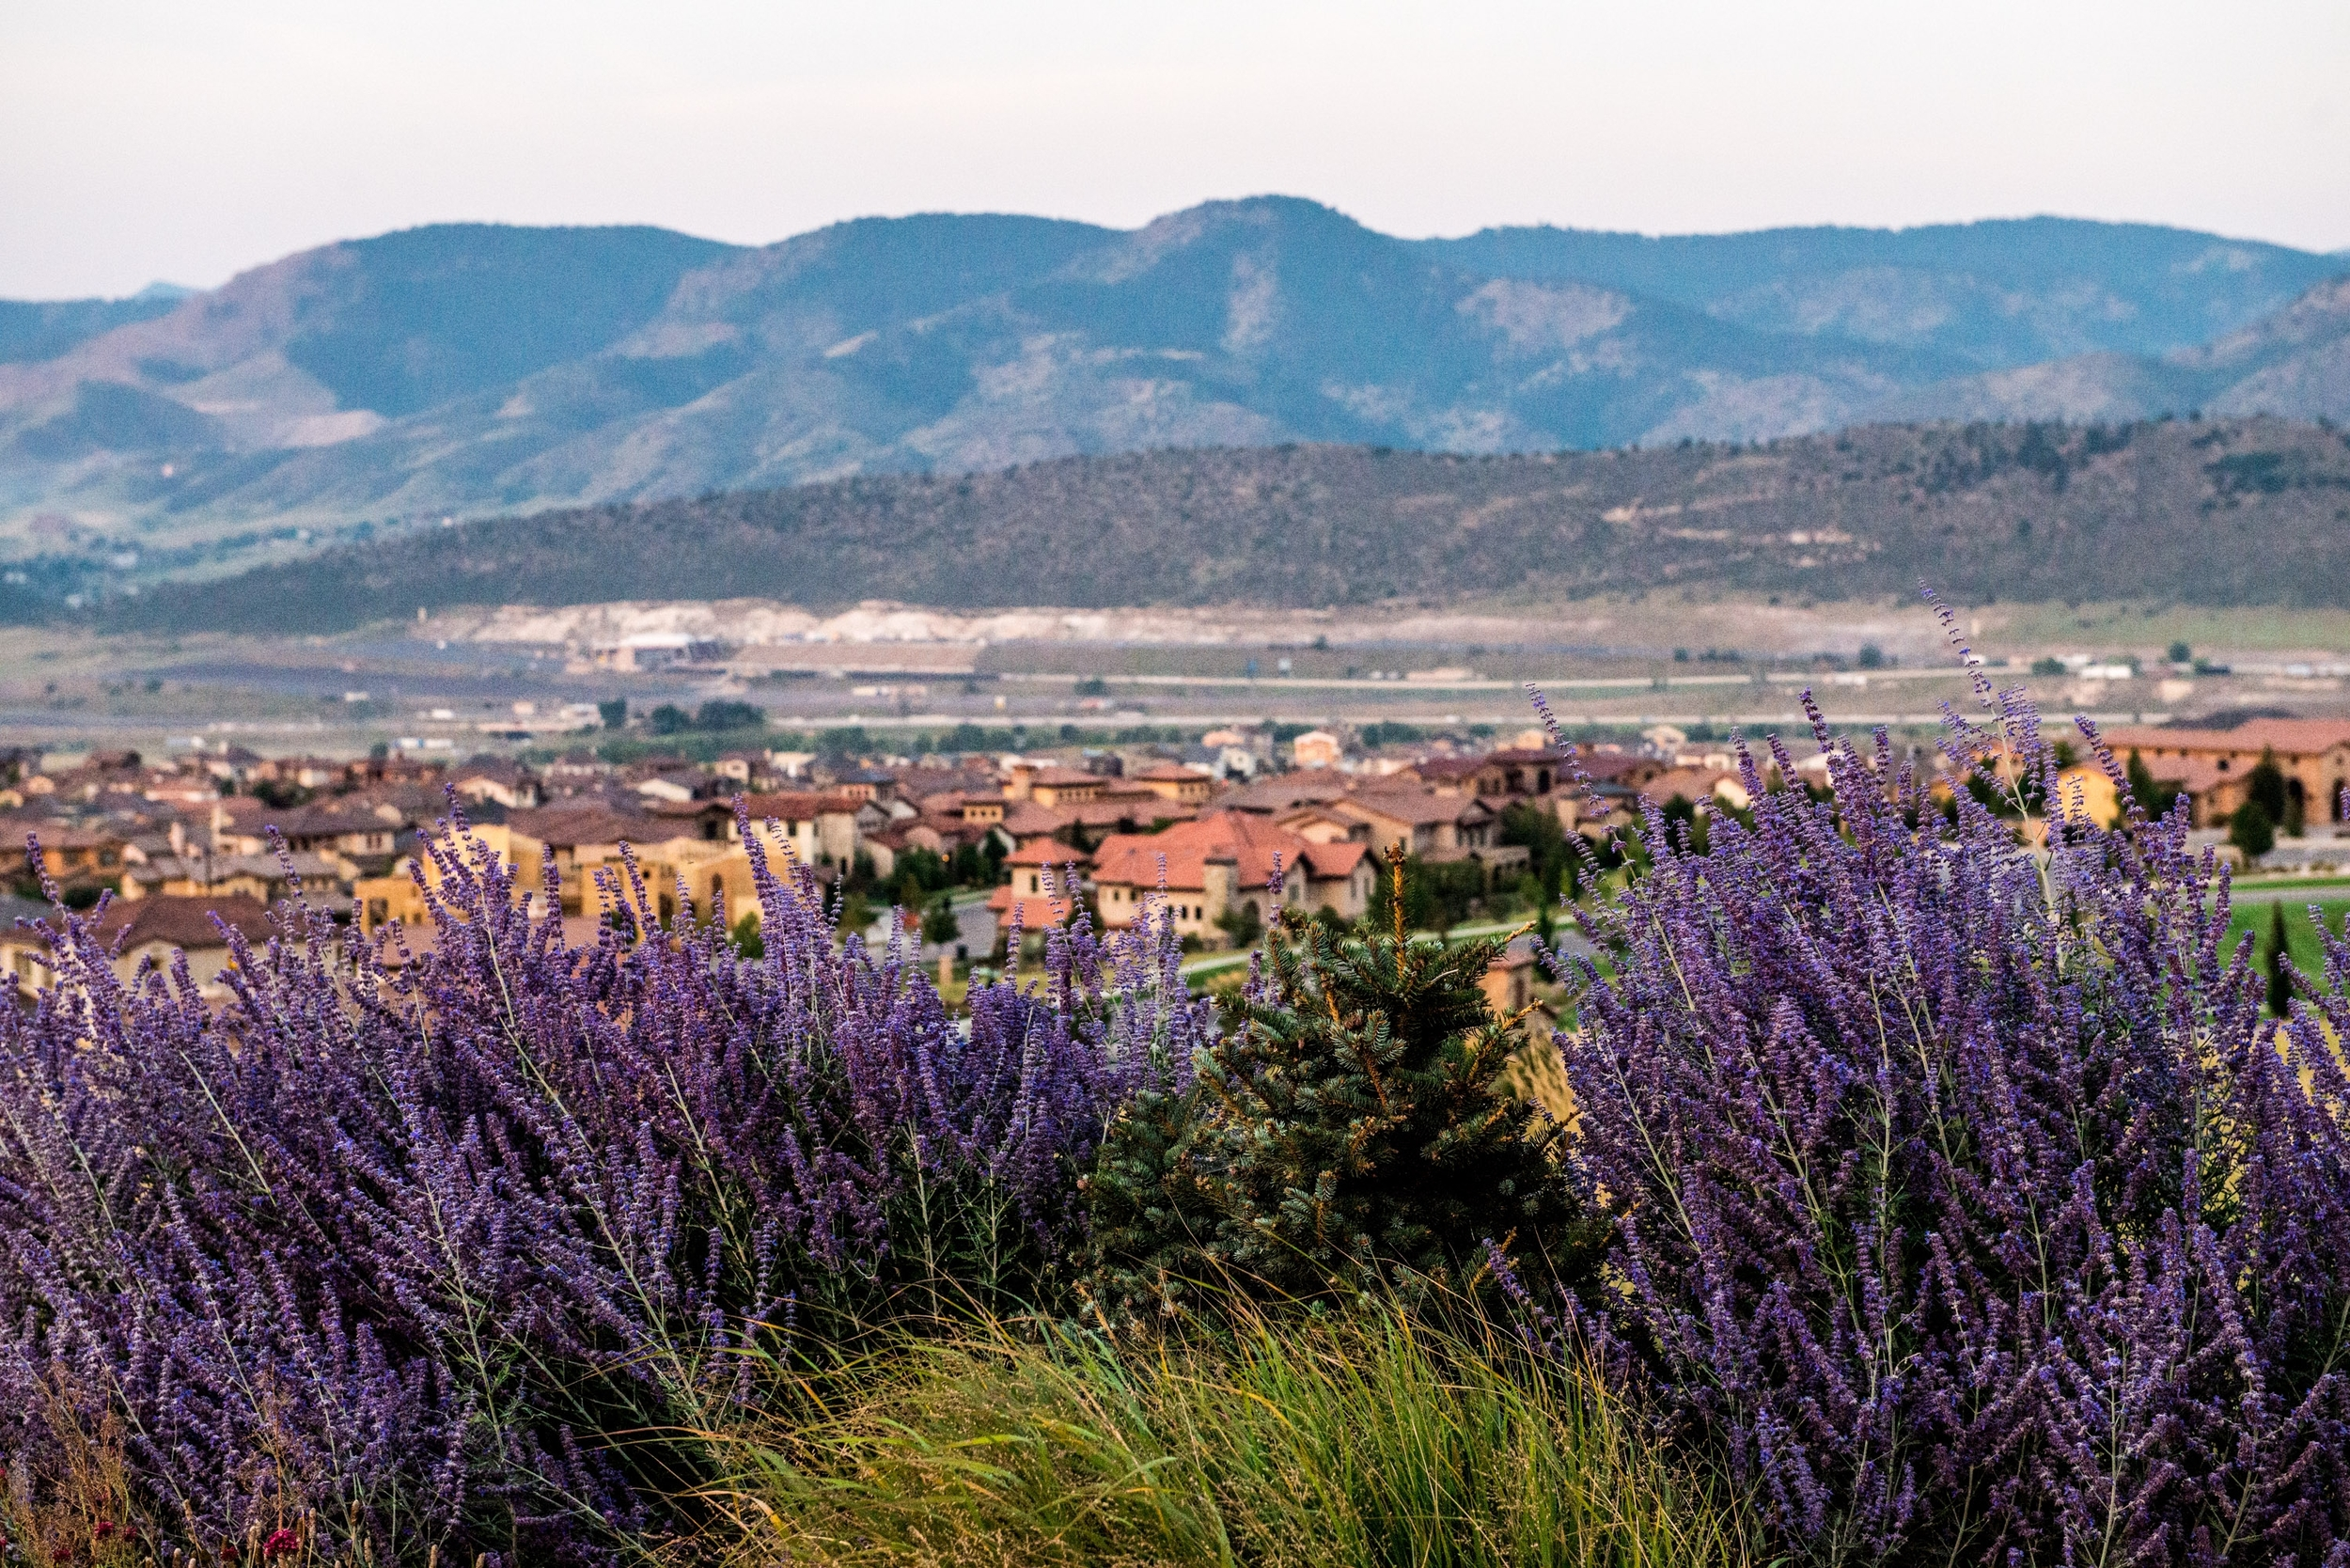 Home sales are strong in Solterra, the Lakewood foothills community west of Denver